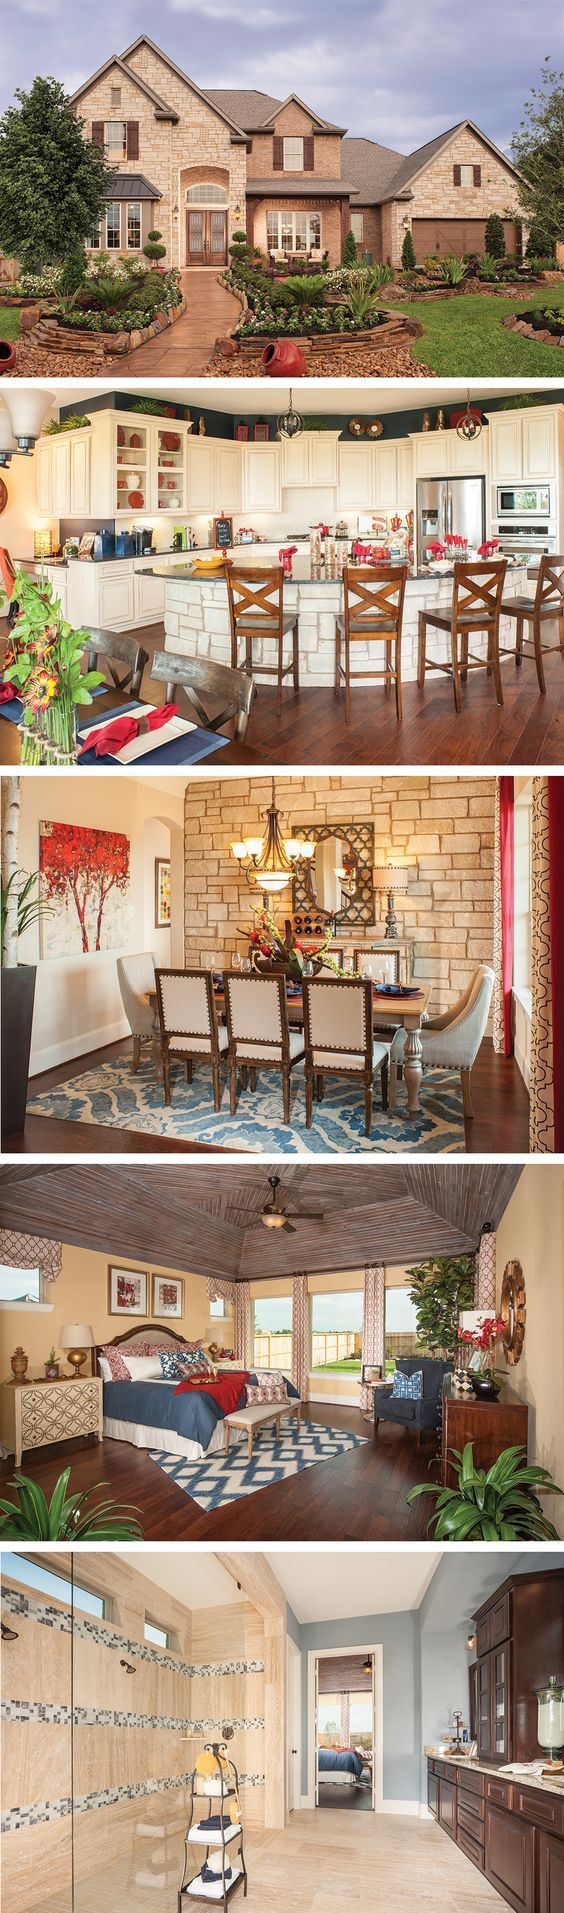 The Lakeway by David Weekley Homes in West Ranch is a 4 or 5 bedroom floorplan that features tray ceilings, a large open kitchen and family room, a sunroom and a covered porch. Custom home upgrades include an elegant curved staircase or a walk-in shower in the master bath.